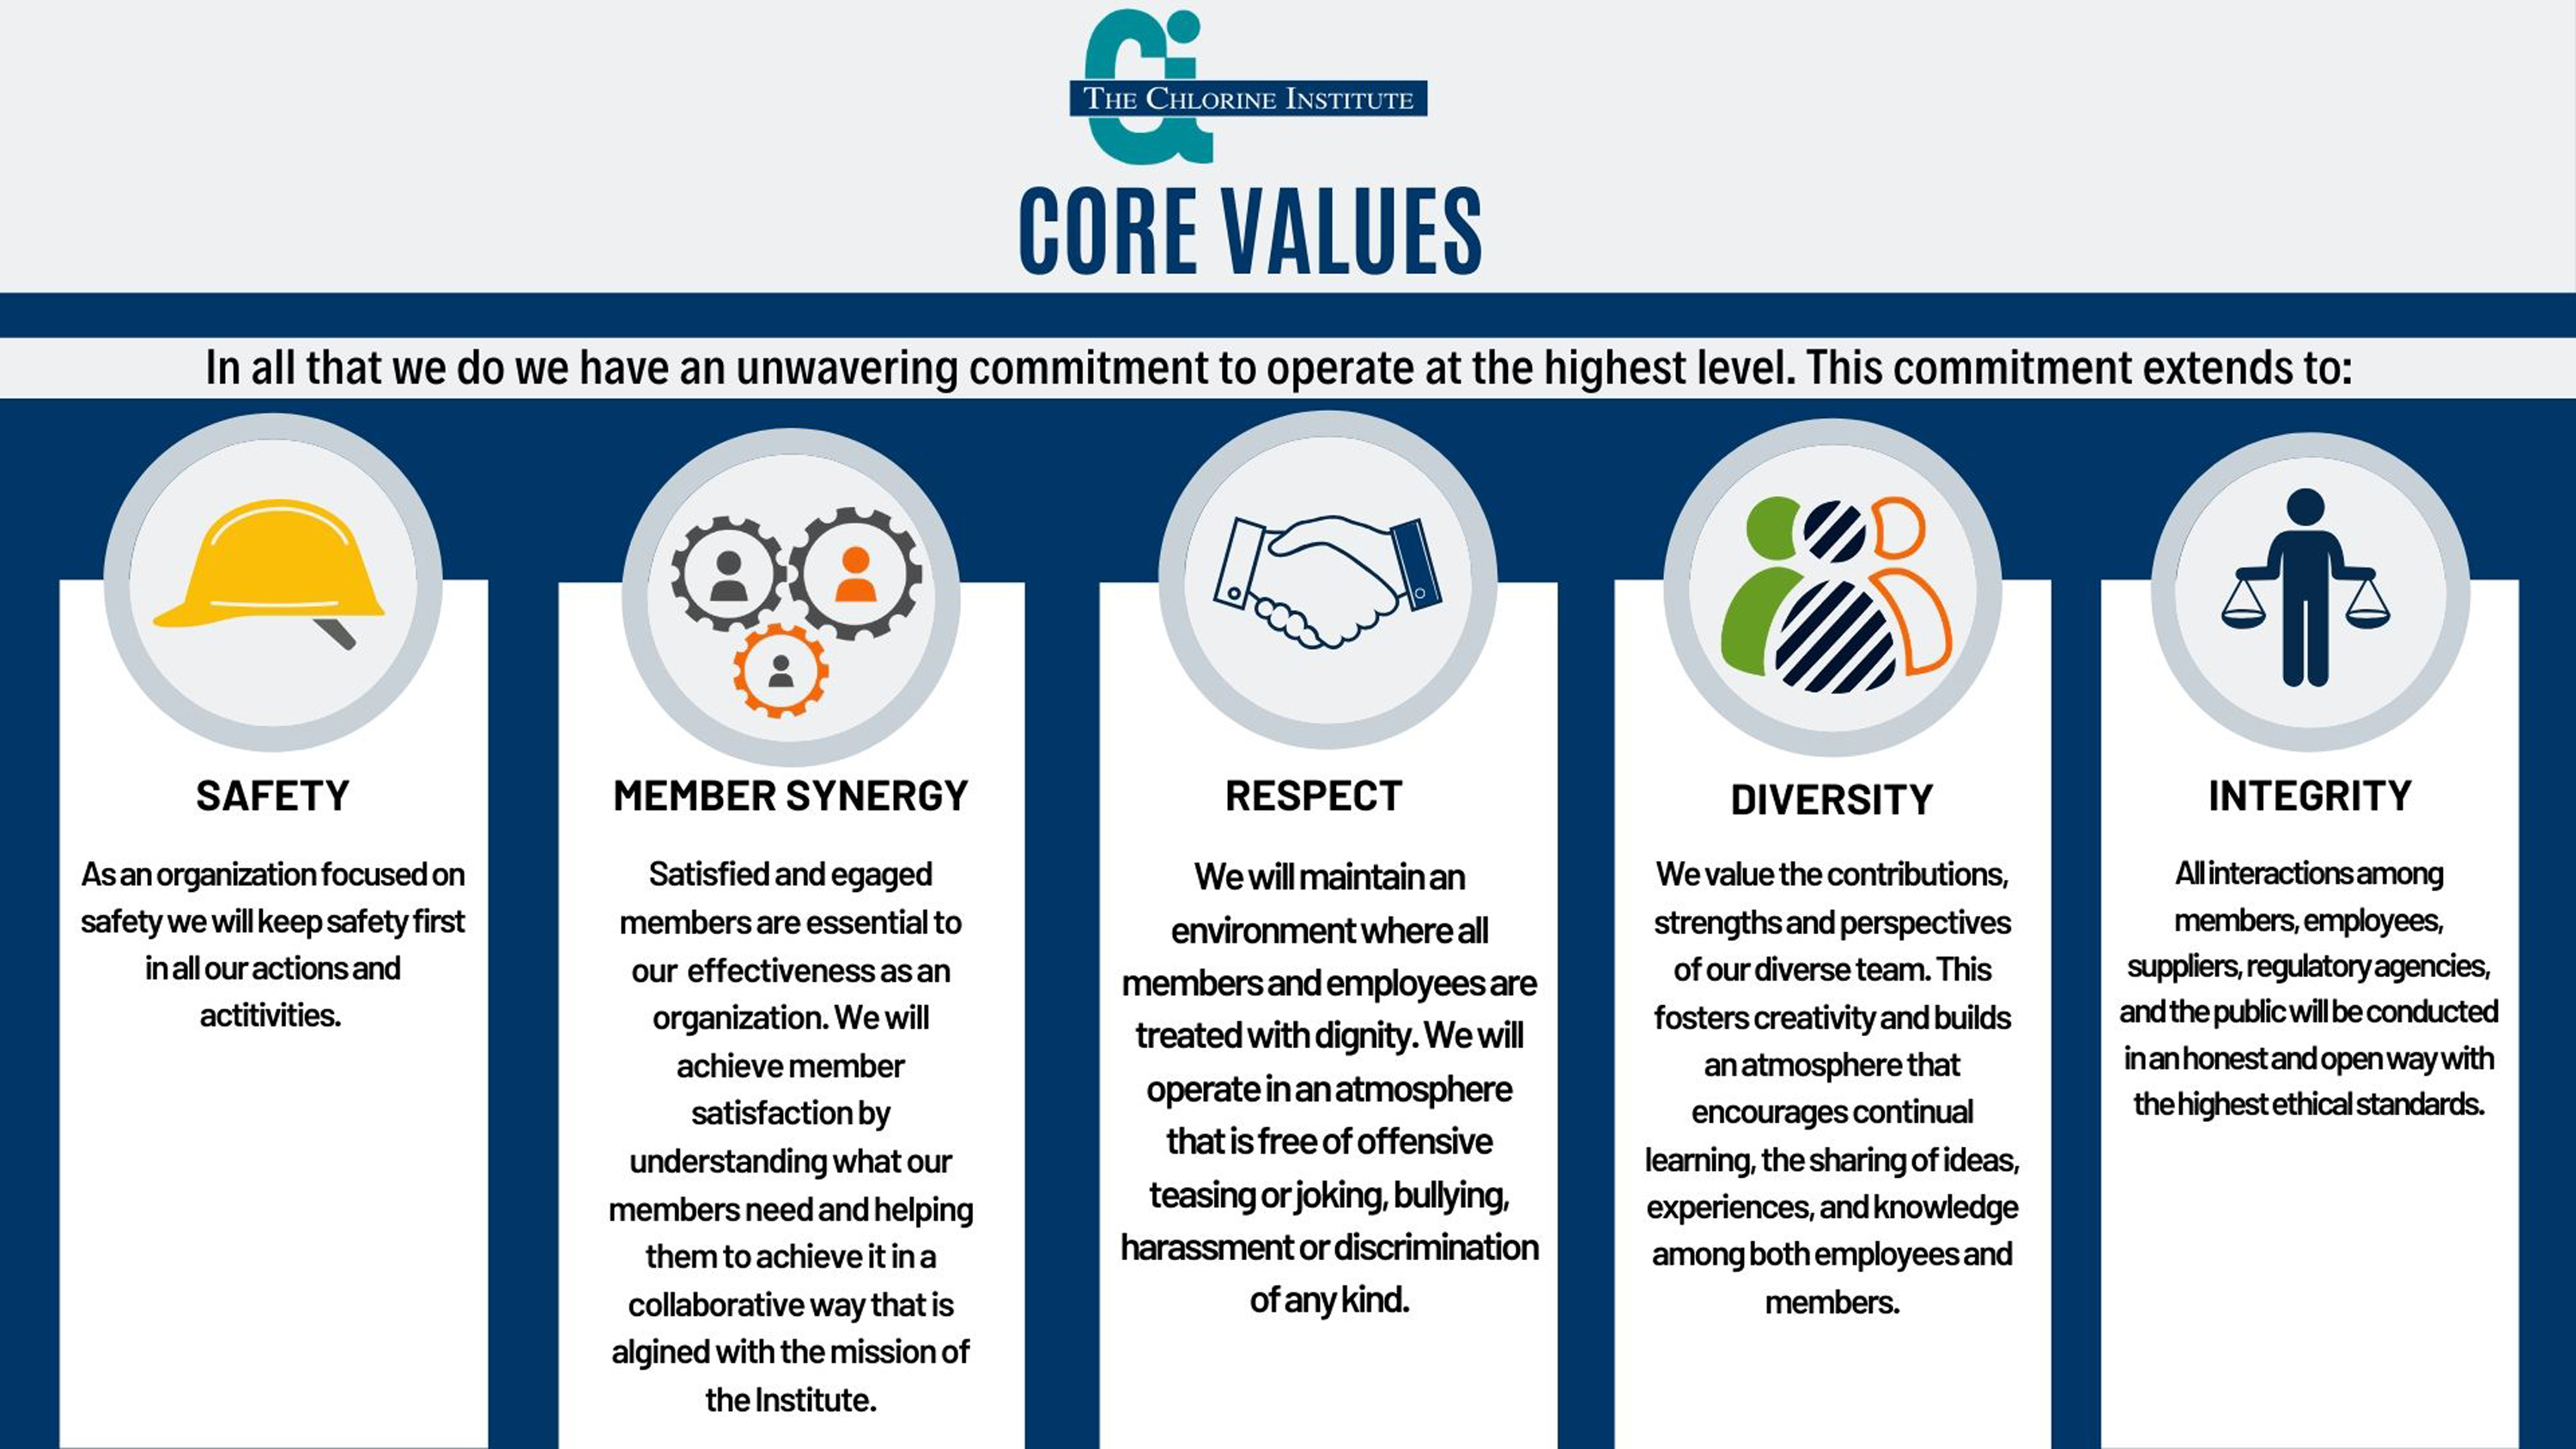 chlorine institute core values